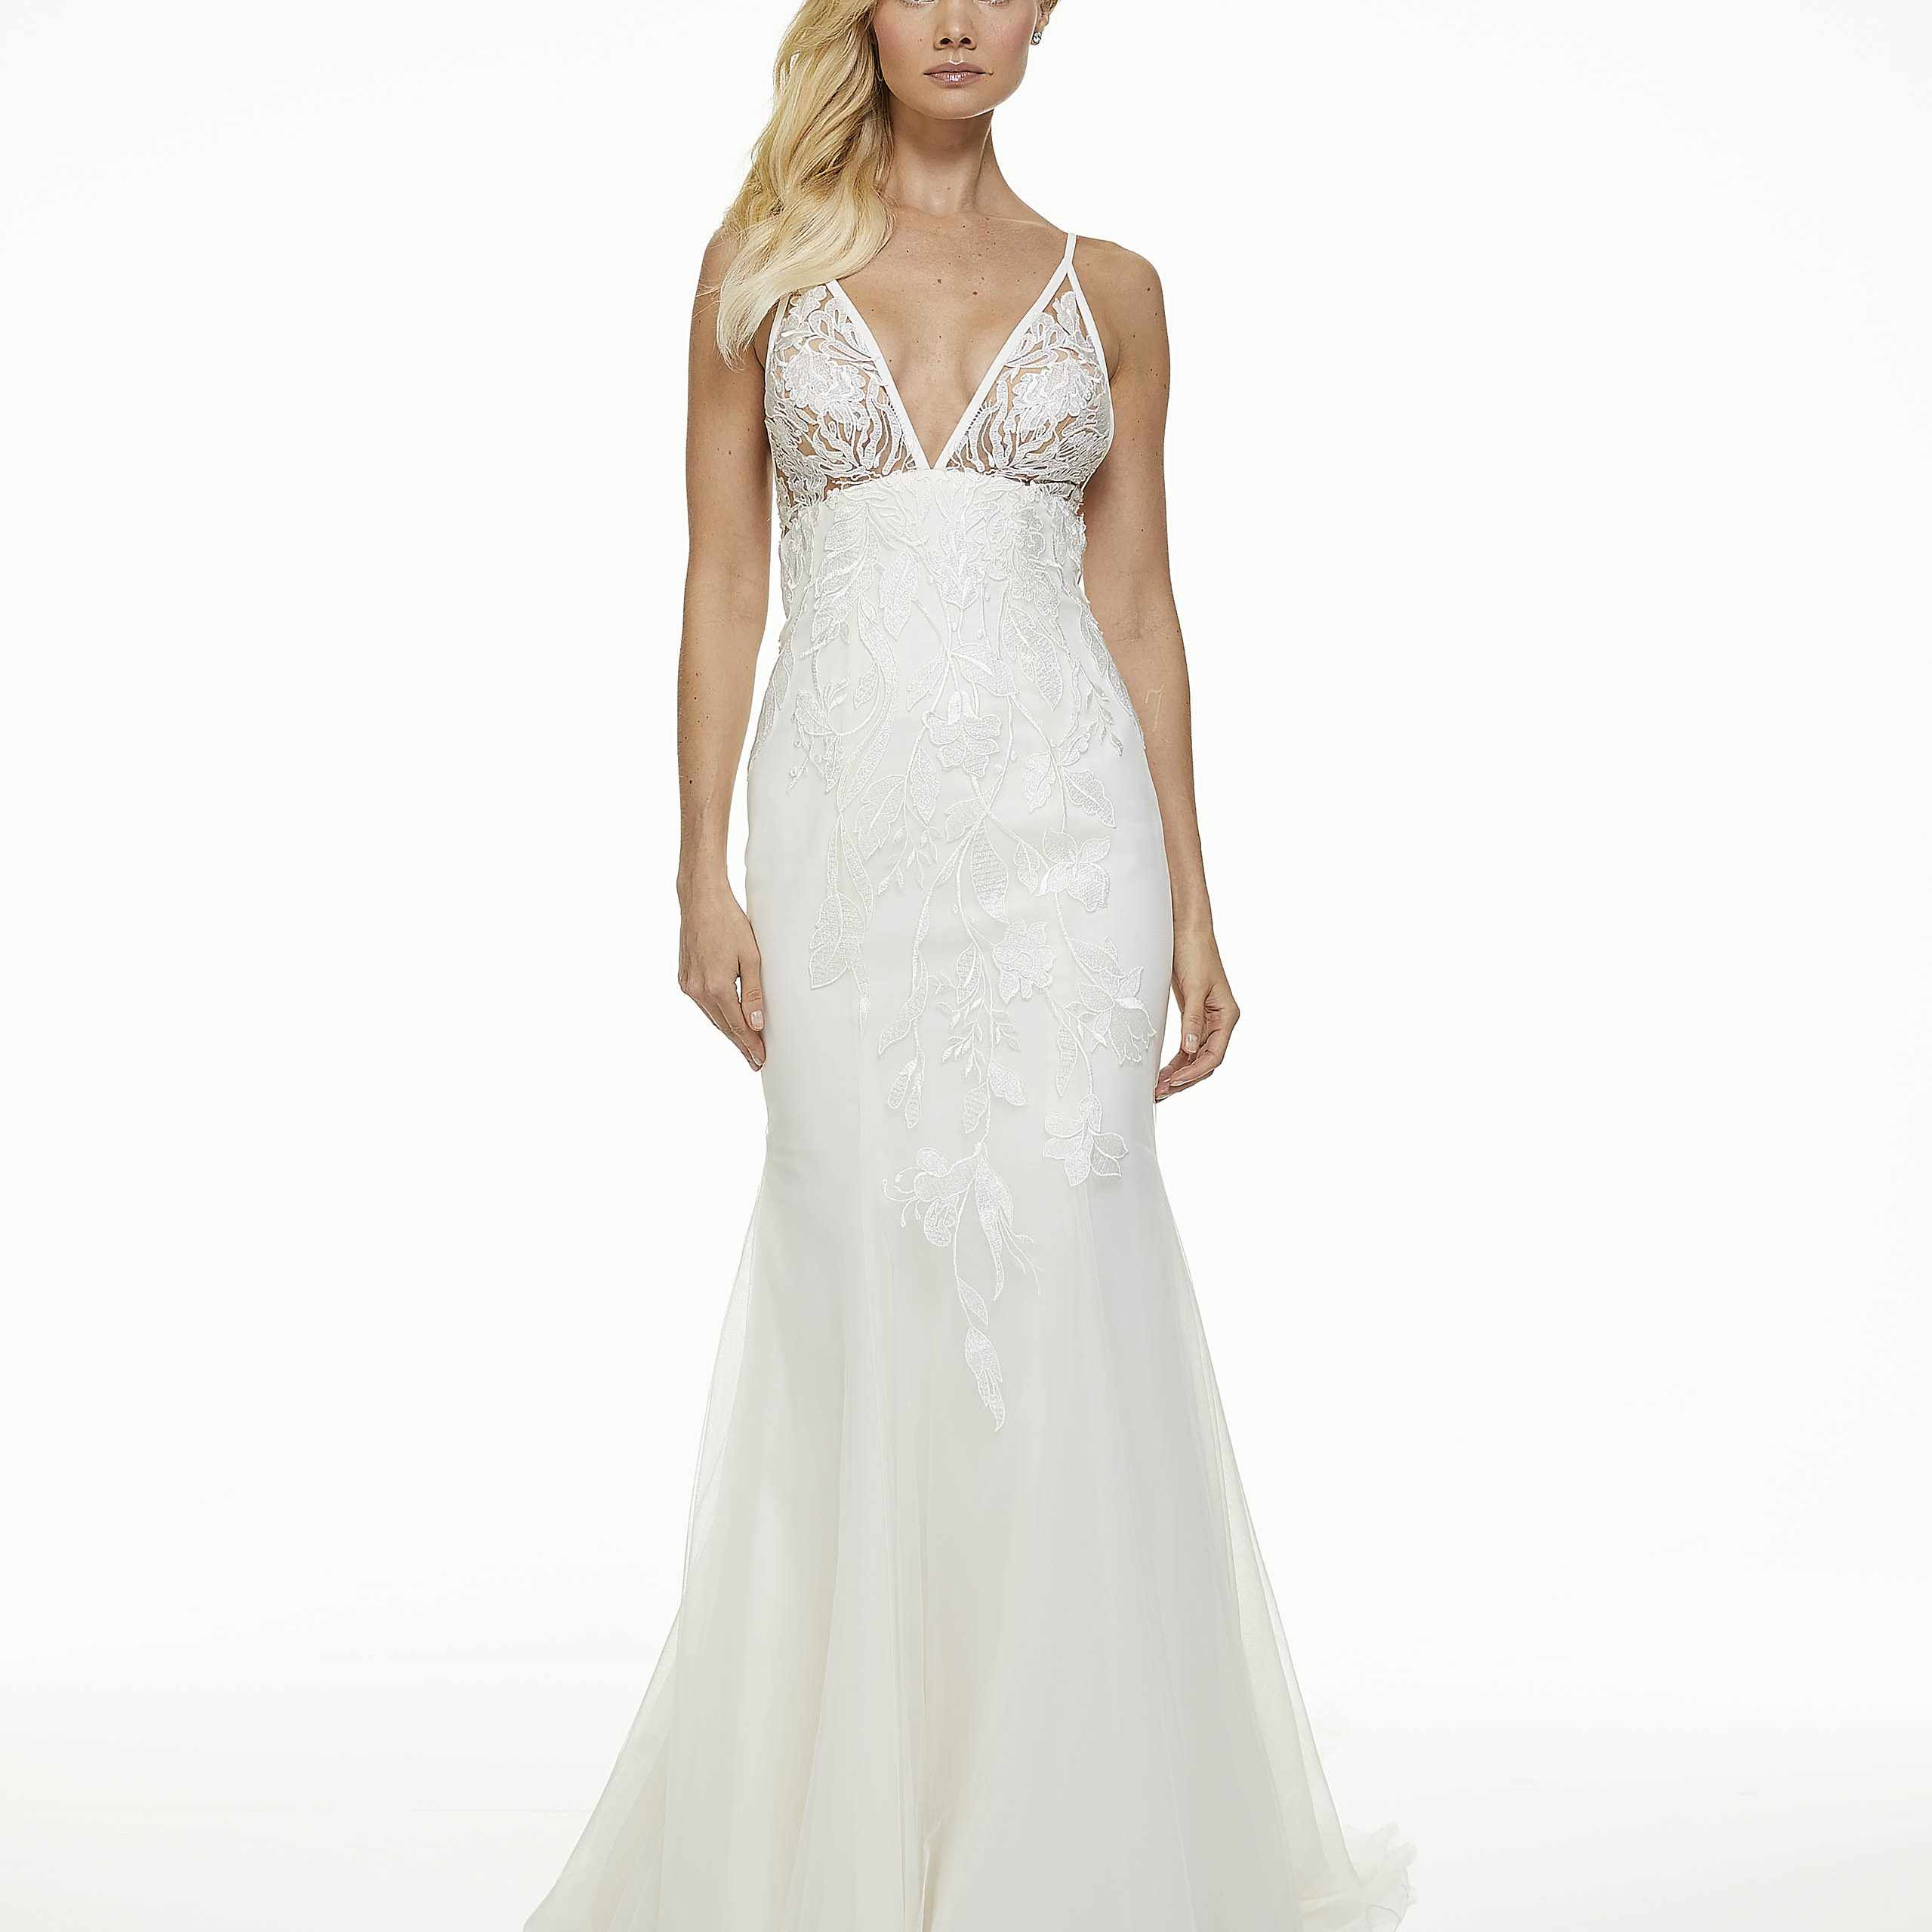 Model in fit-and-flare empire wedding dress